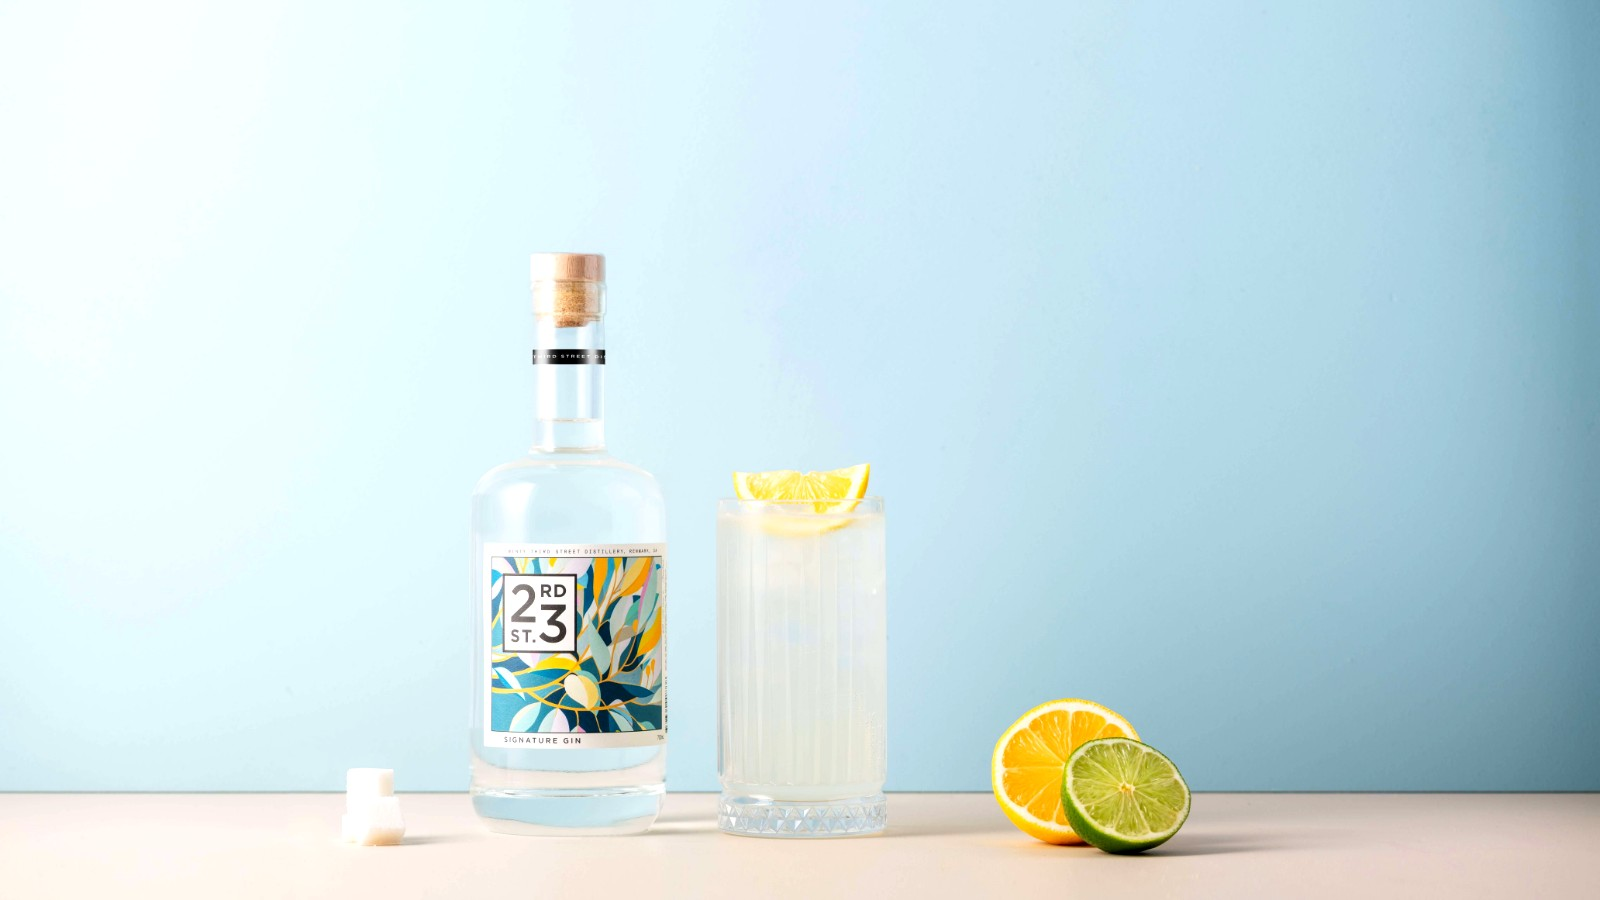 Image of Signature Gin Sling 🍋